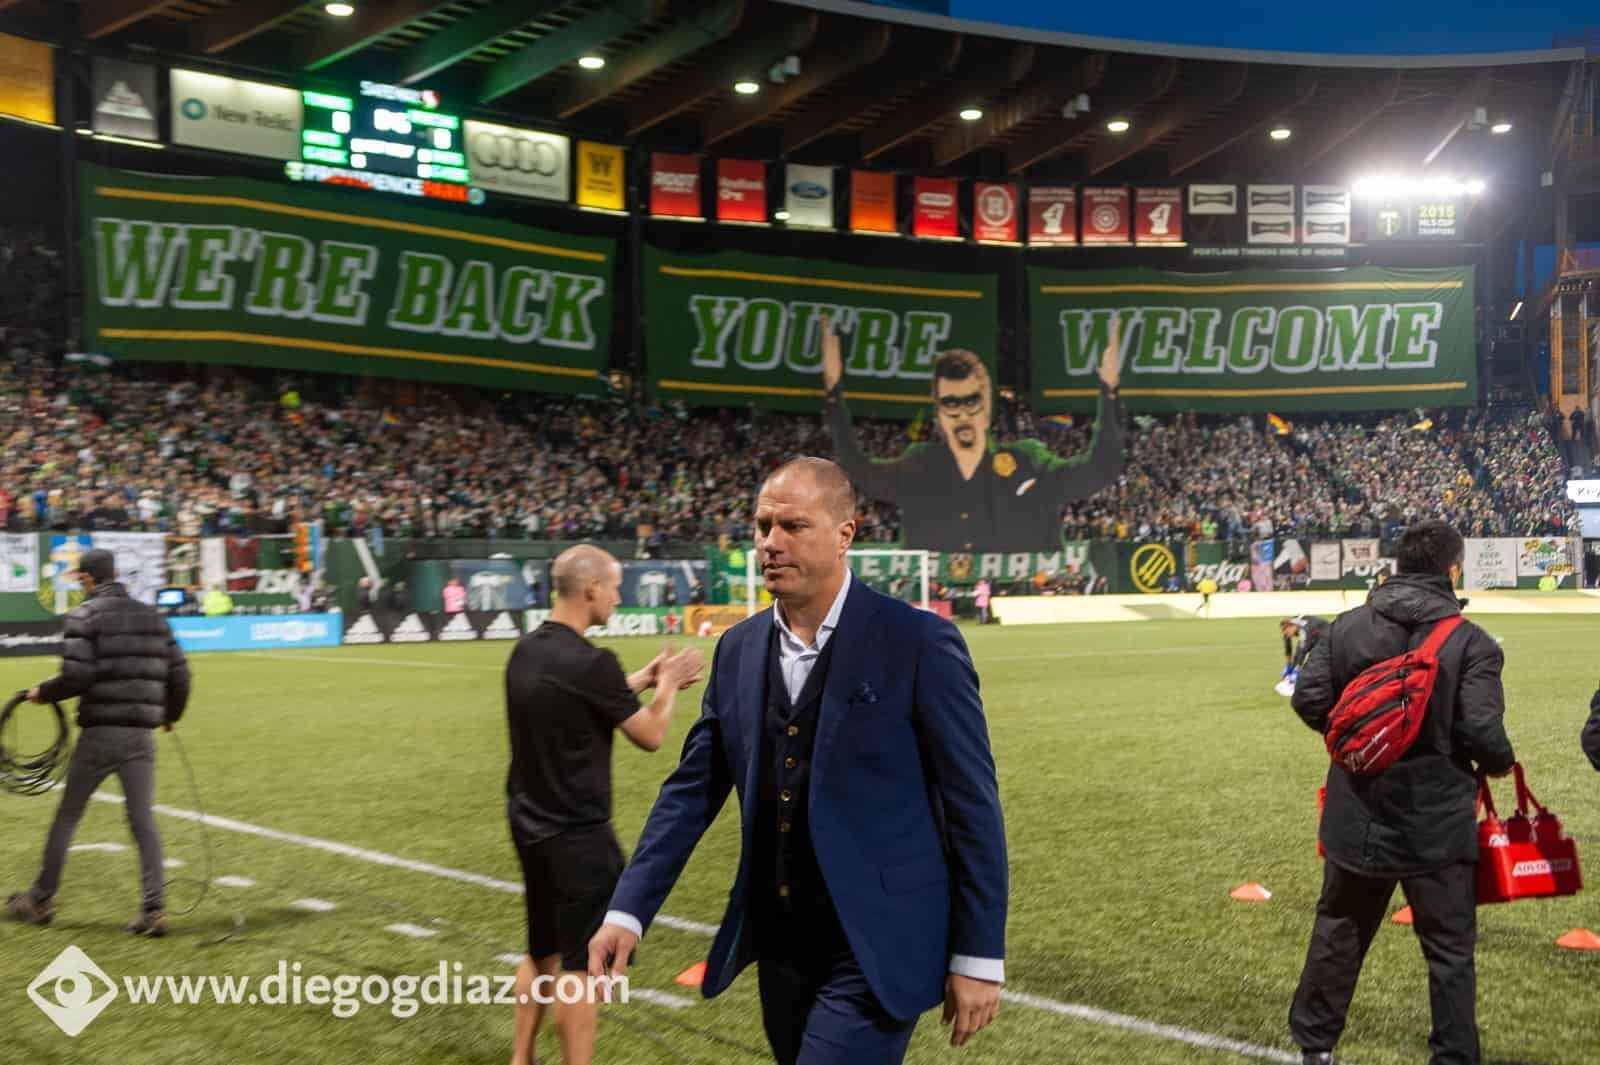 Timbers roster shaping up for 2019 Major league soccer